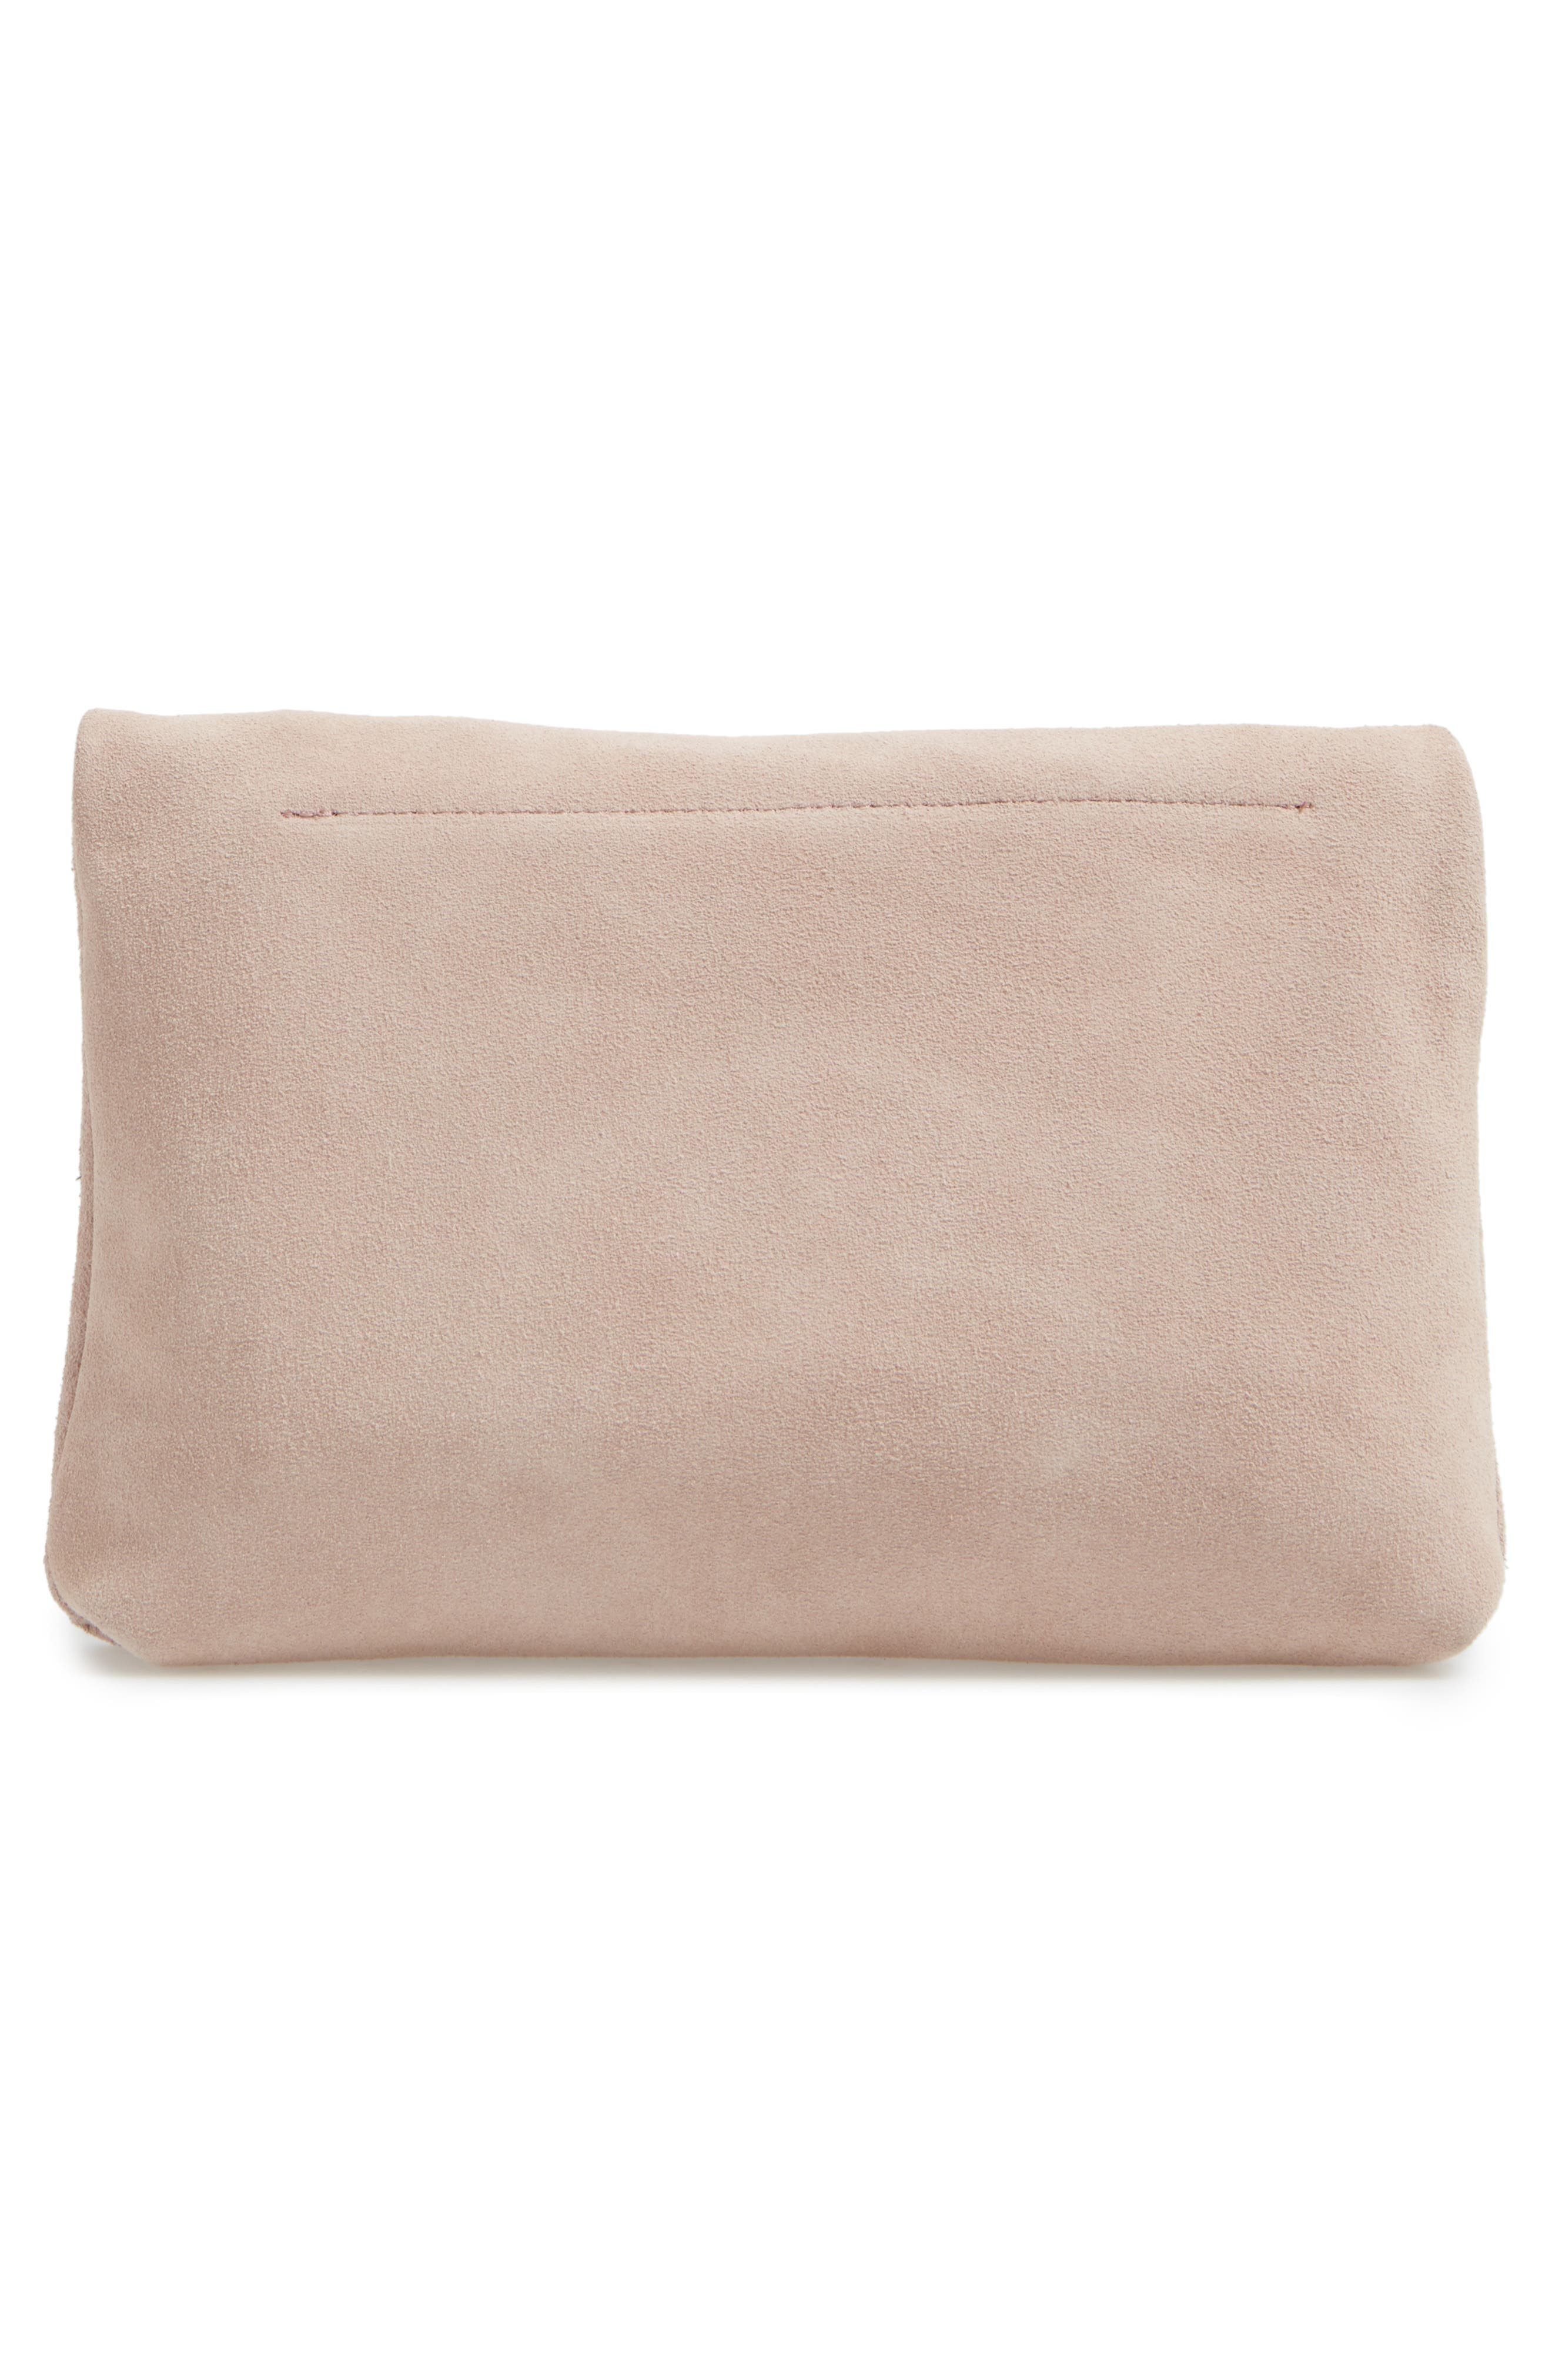 Alternate Image 3  - Sole Society Maron Foldover Suede Clutch